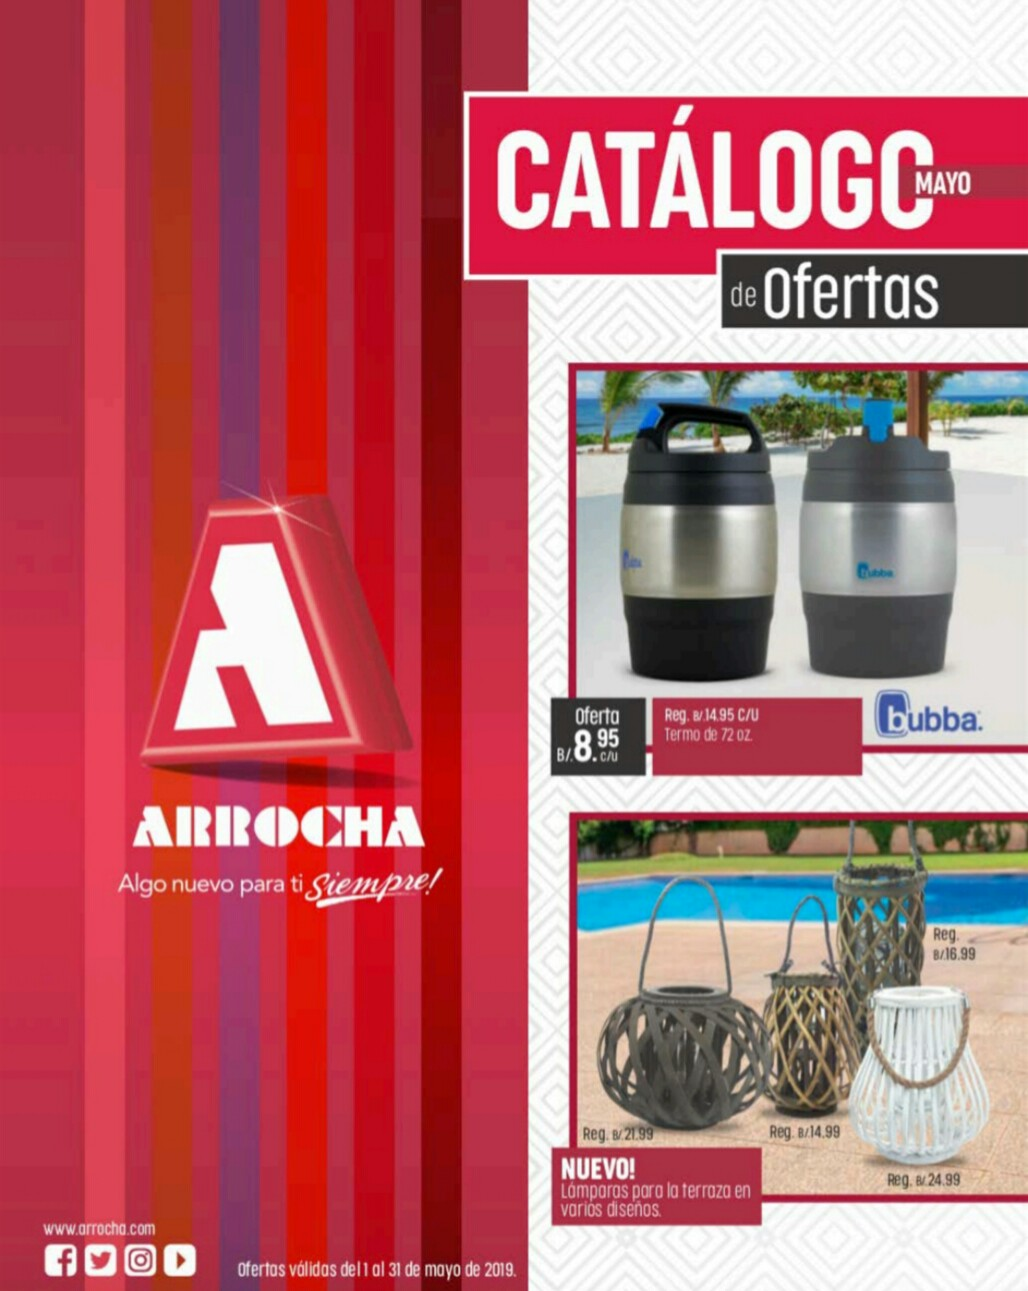 Catalogo farmacia arrocha mayo 2019 p1